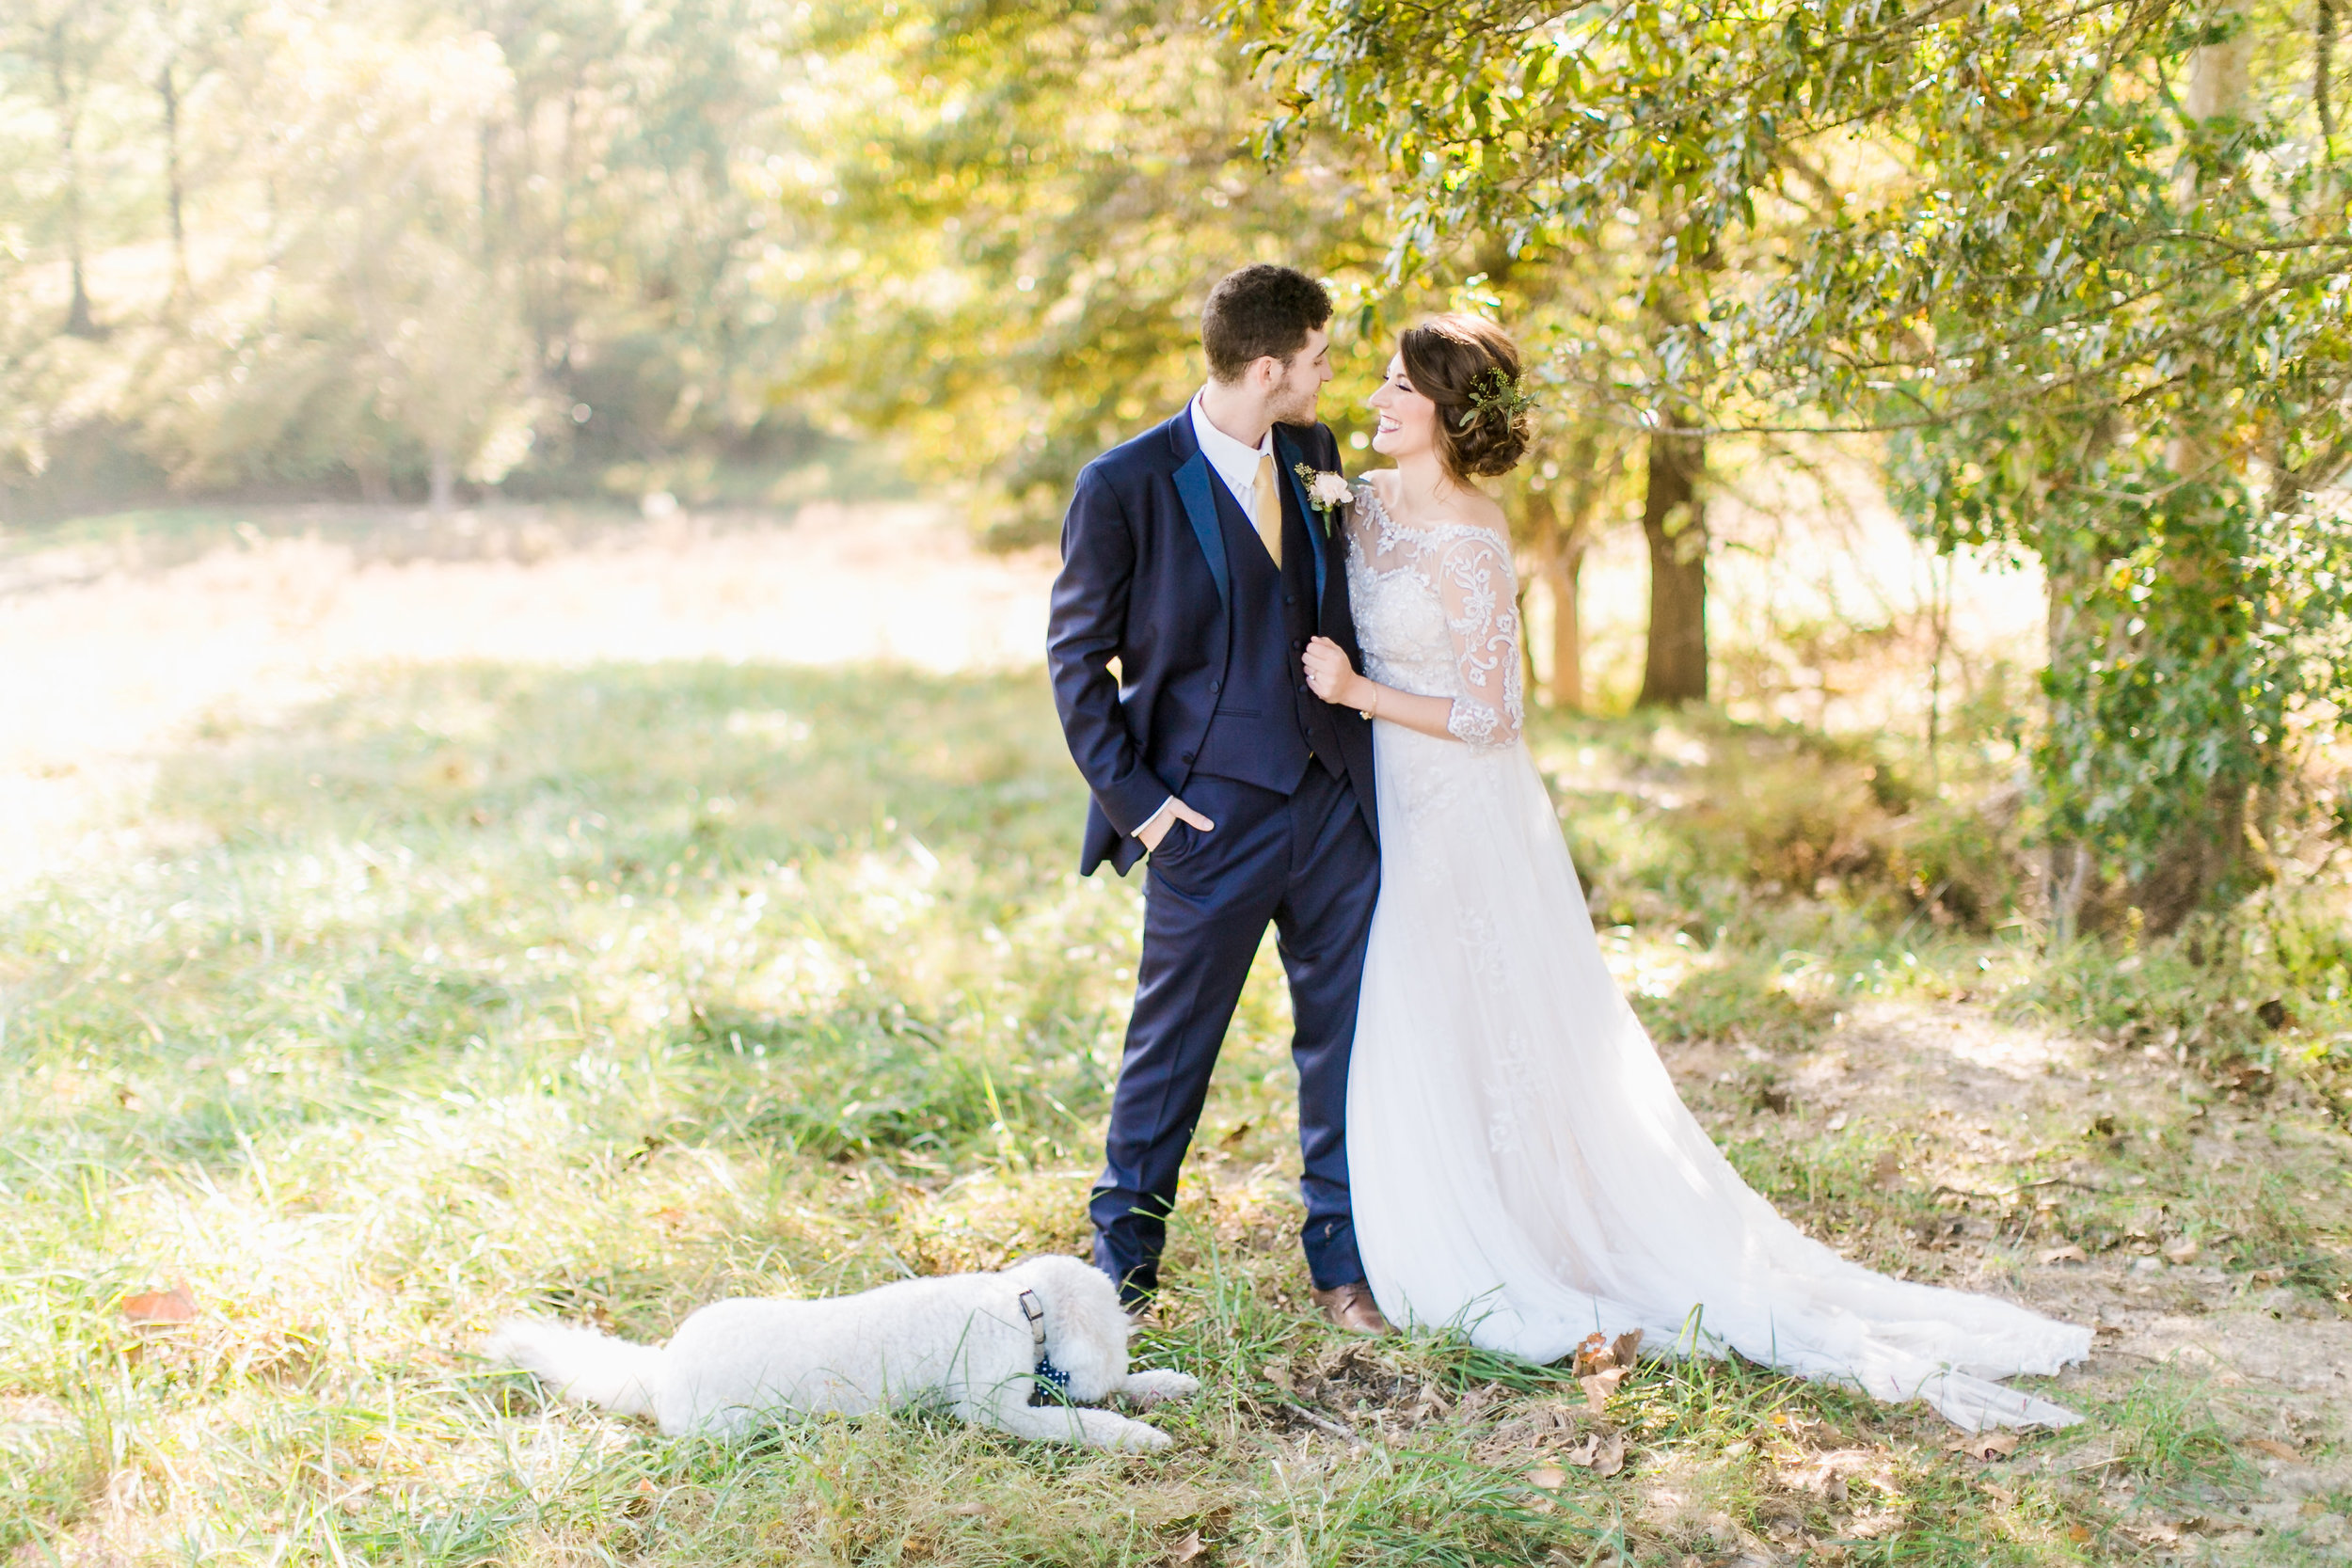 MissouriRusticWedding_StLouisWeddingPhotographer_AliciaDan_CatherineRhodesPhotography-1690-Edit.jpg